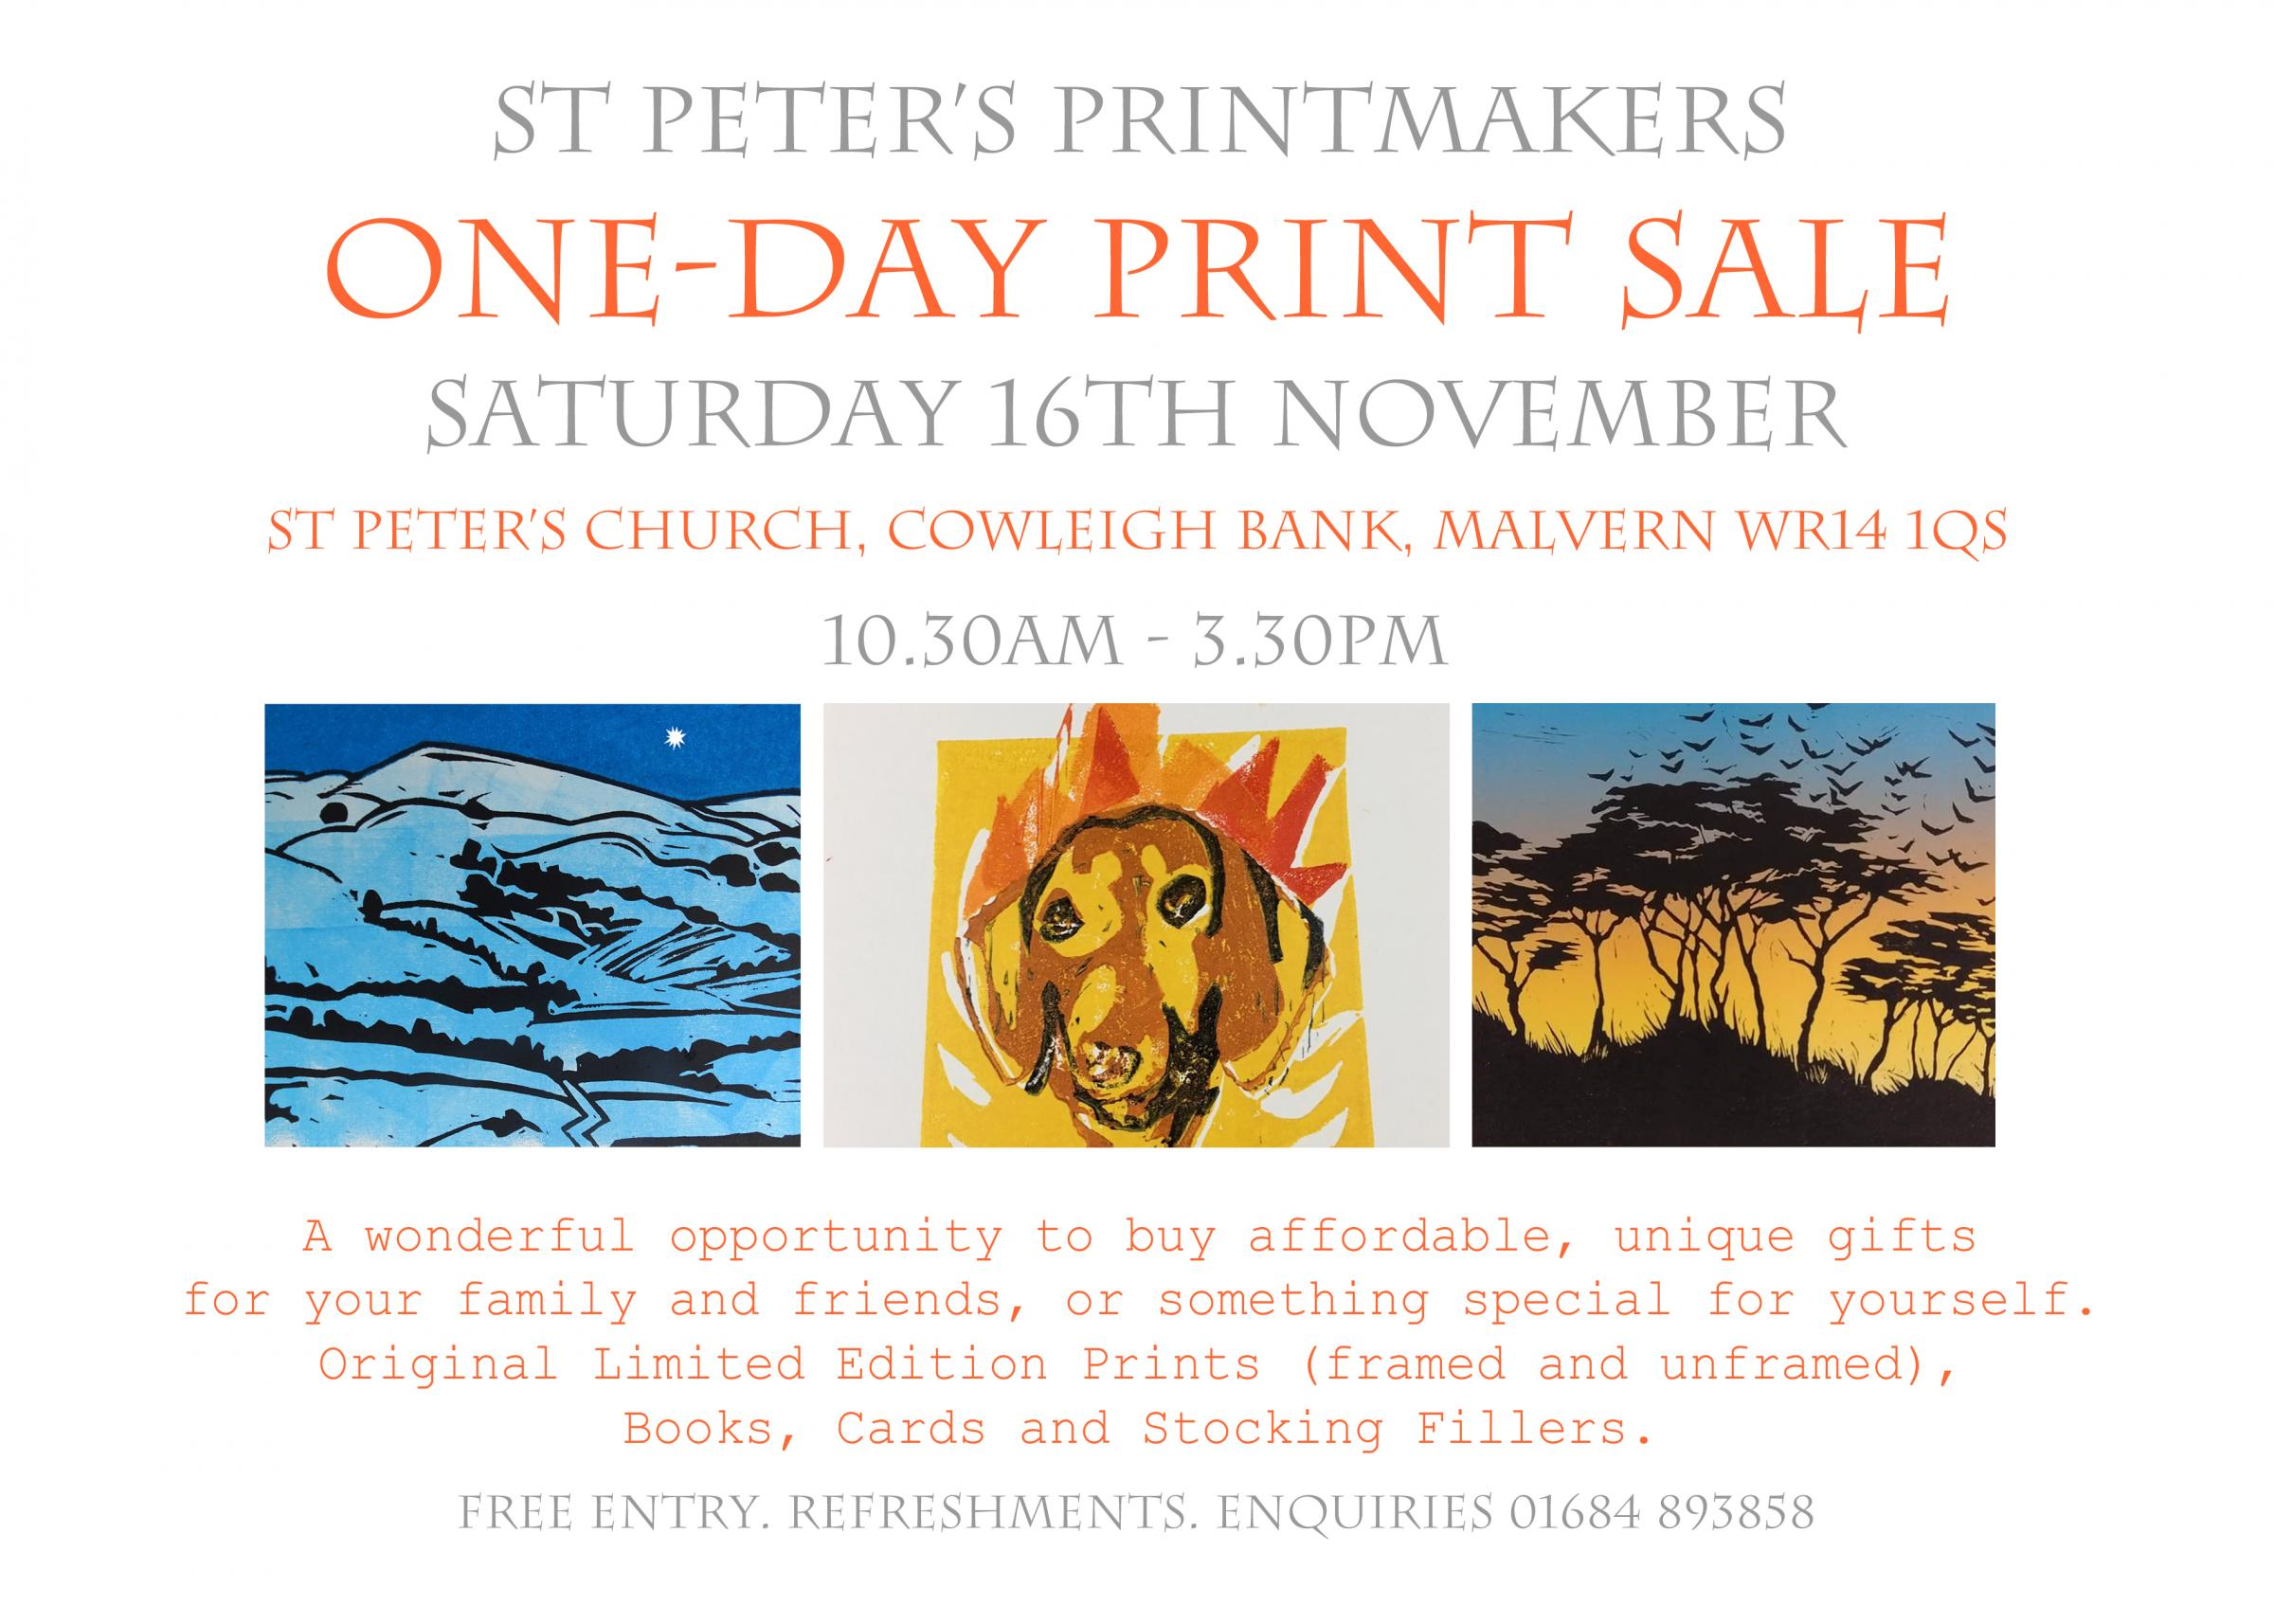 St Peter's Printmakers One-Day Print Sale